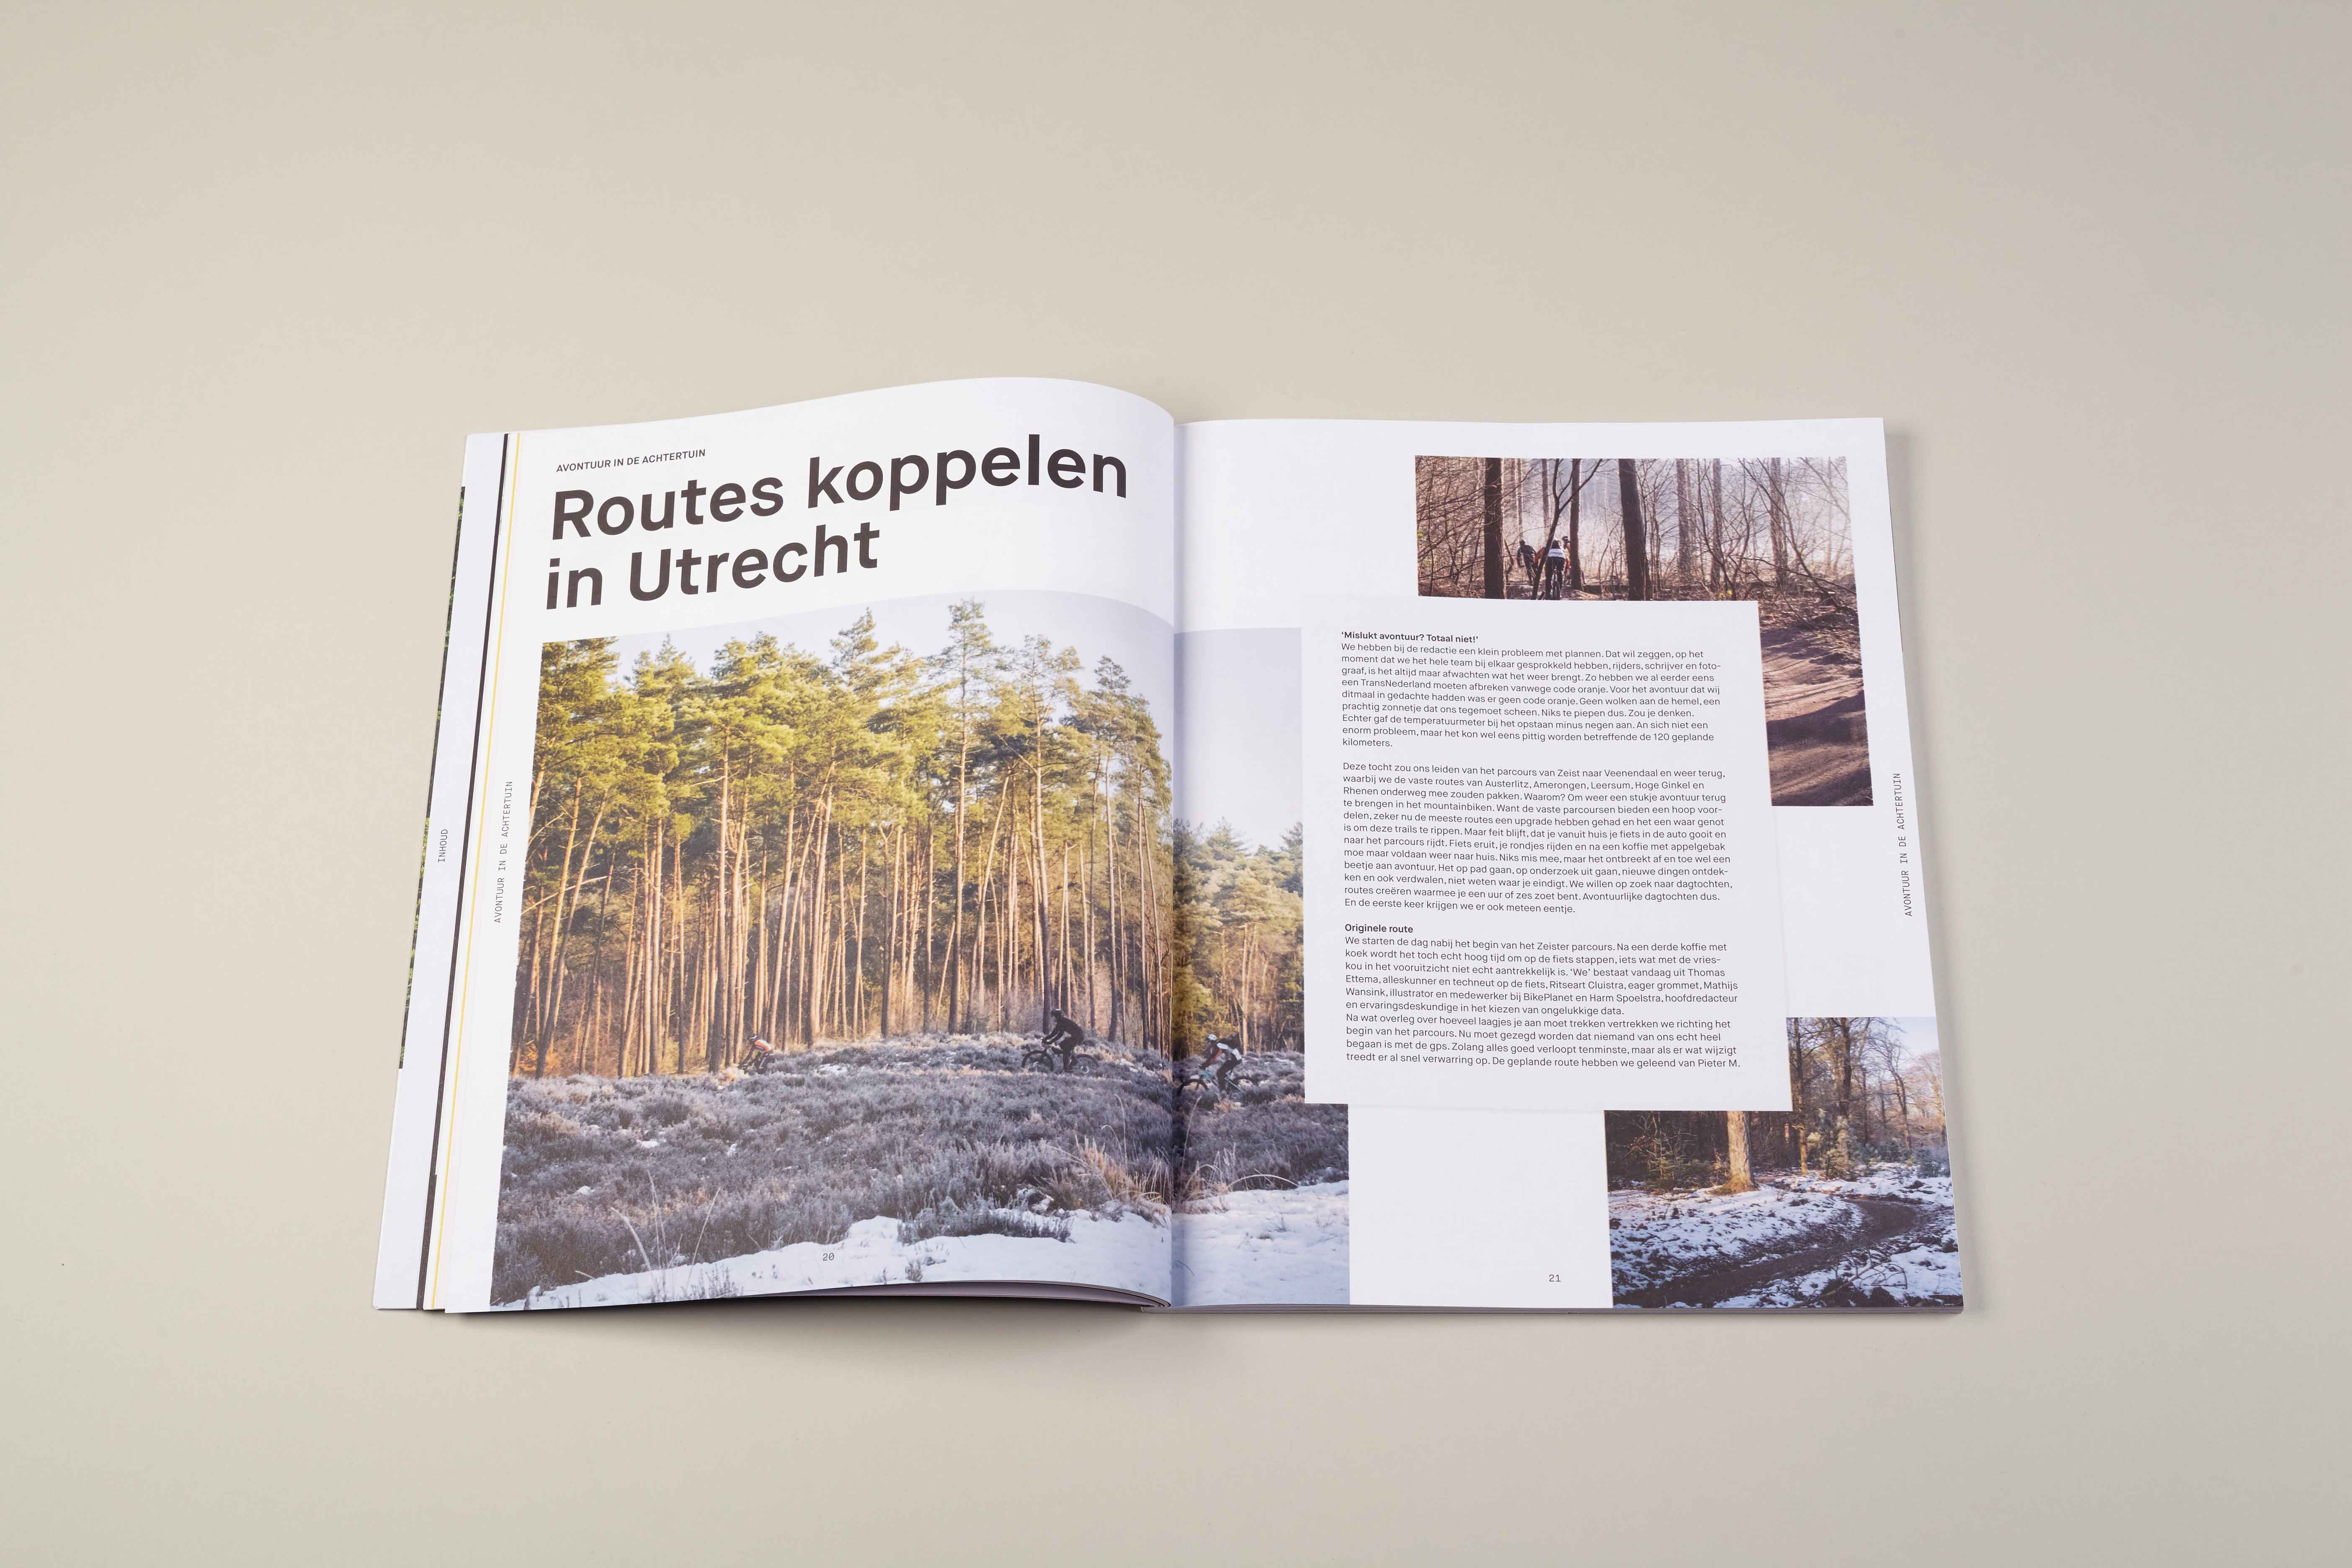 STUDIO JORD NOORBEEK Mountainbike magazine – Up/Down